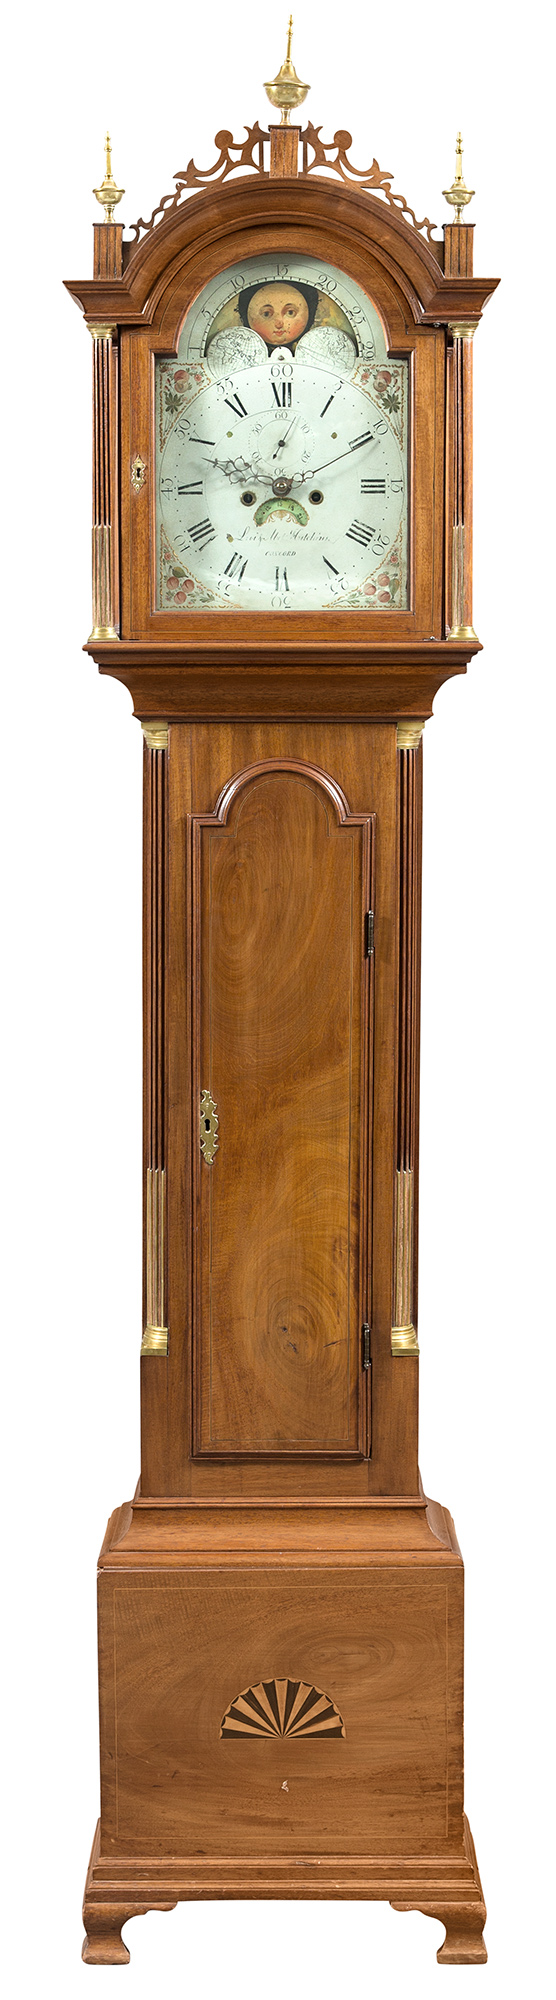 Lot image - Federal Inlaid Mahogany and Brass Mounted Tall Case Clock